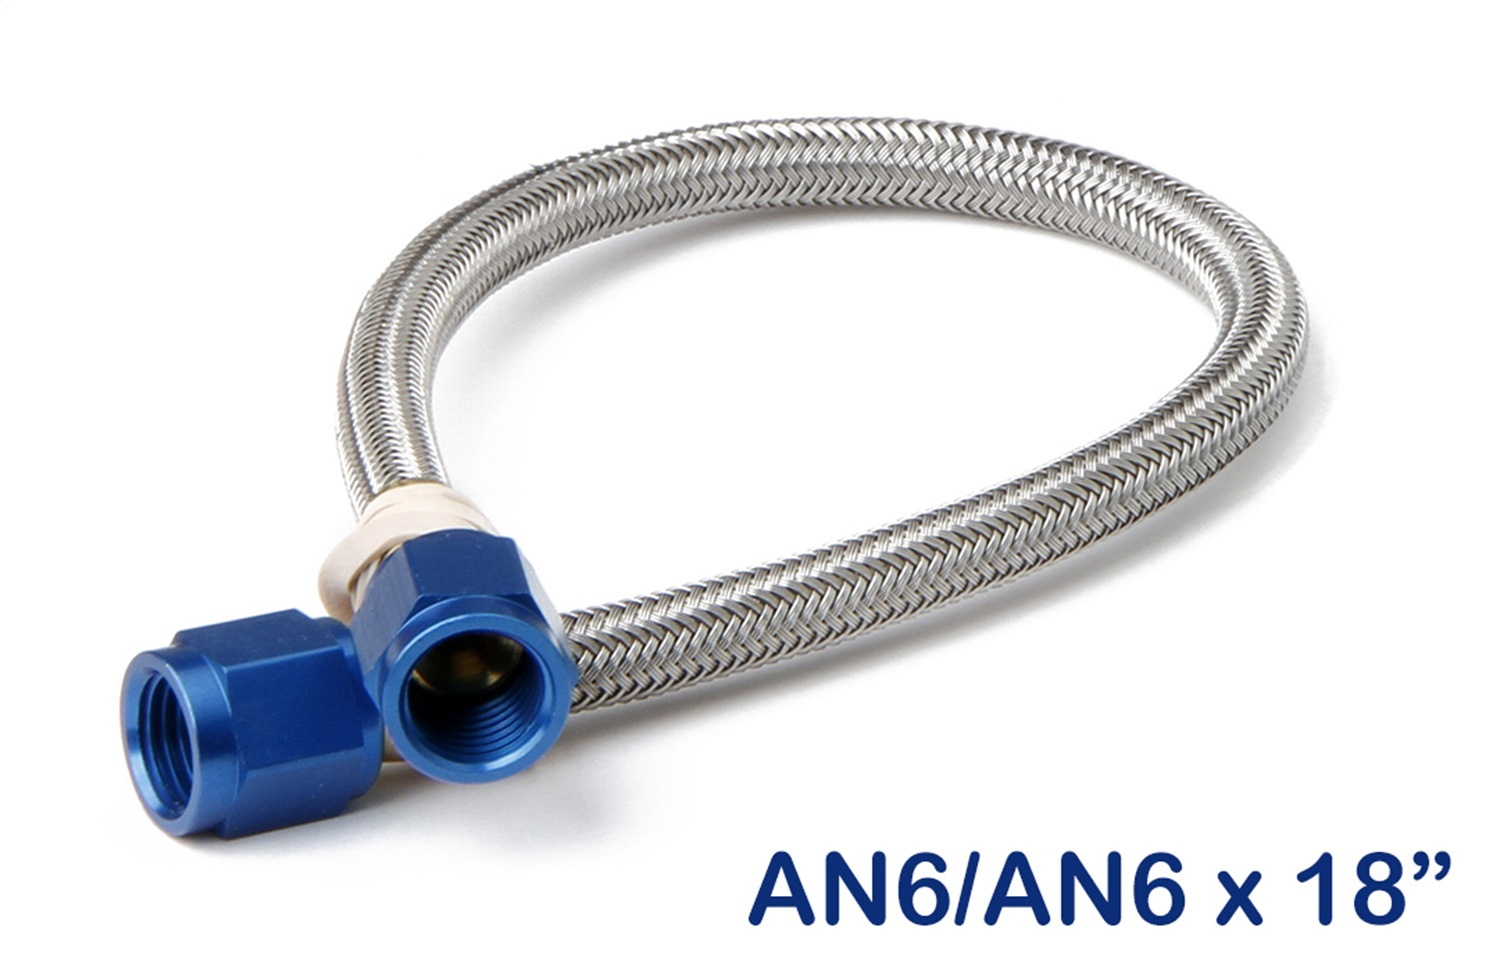 NOS 15405NOS Stainless Steel Braided Hose